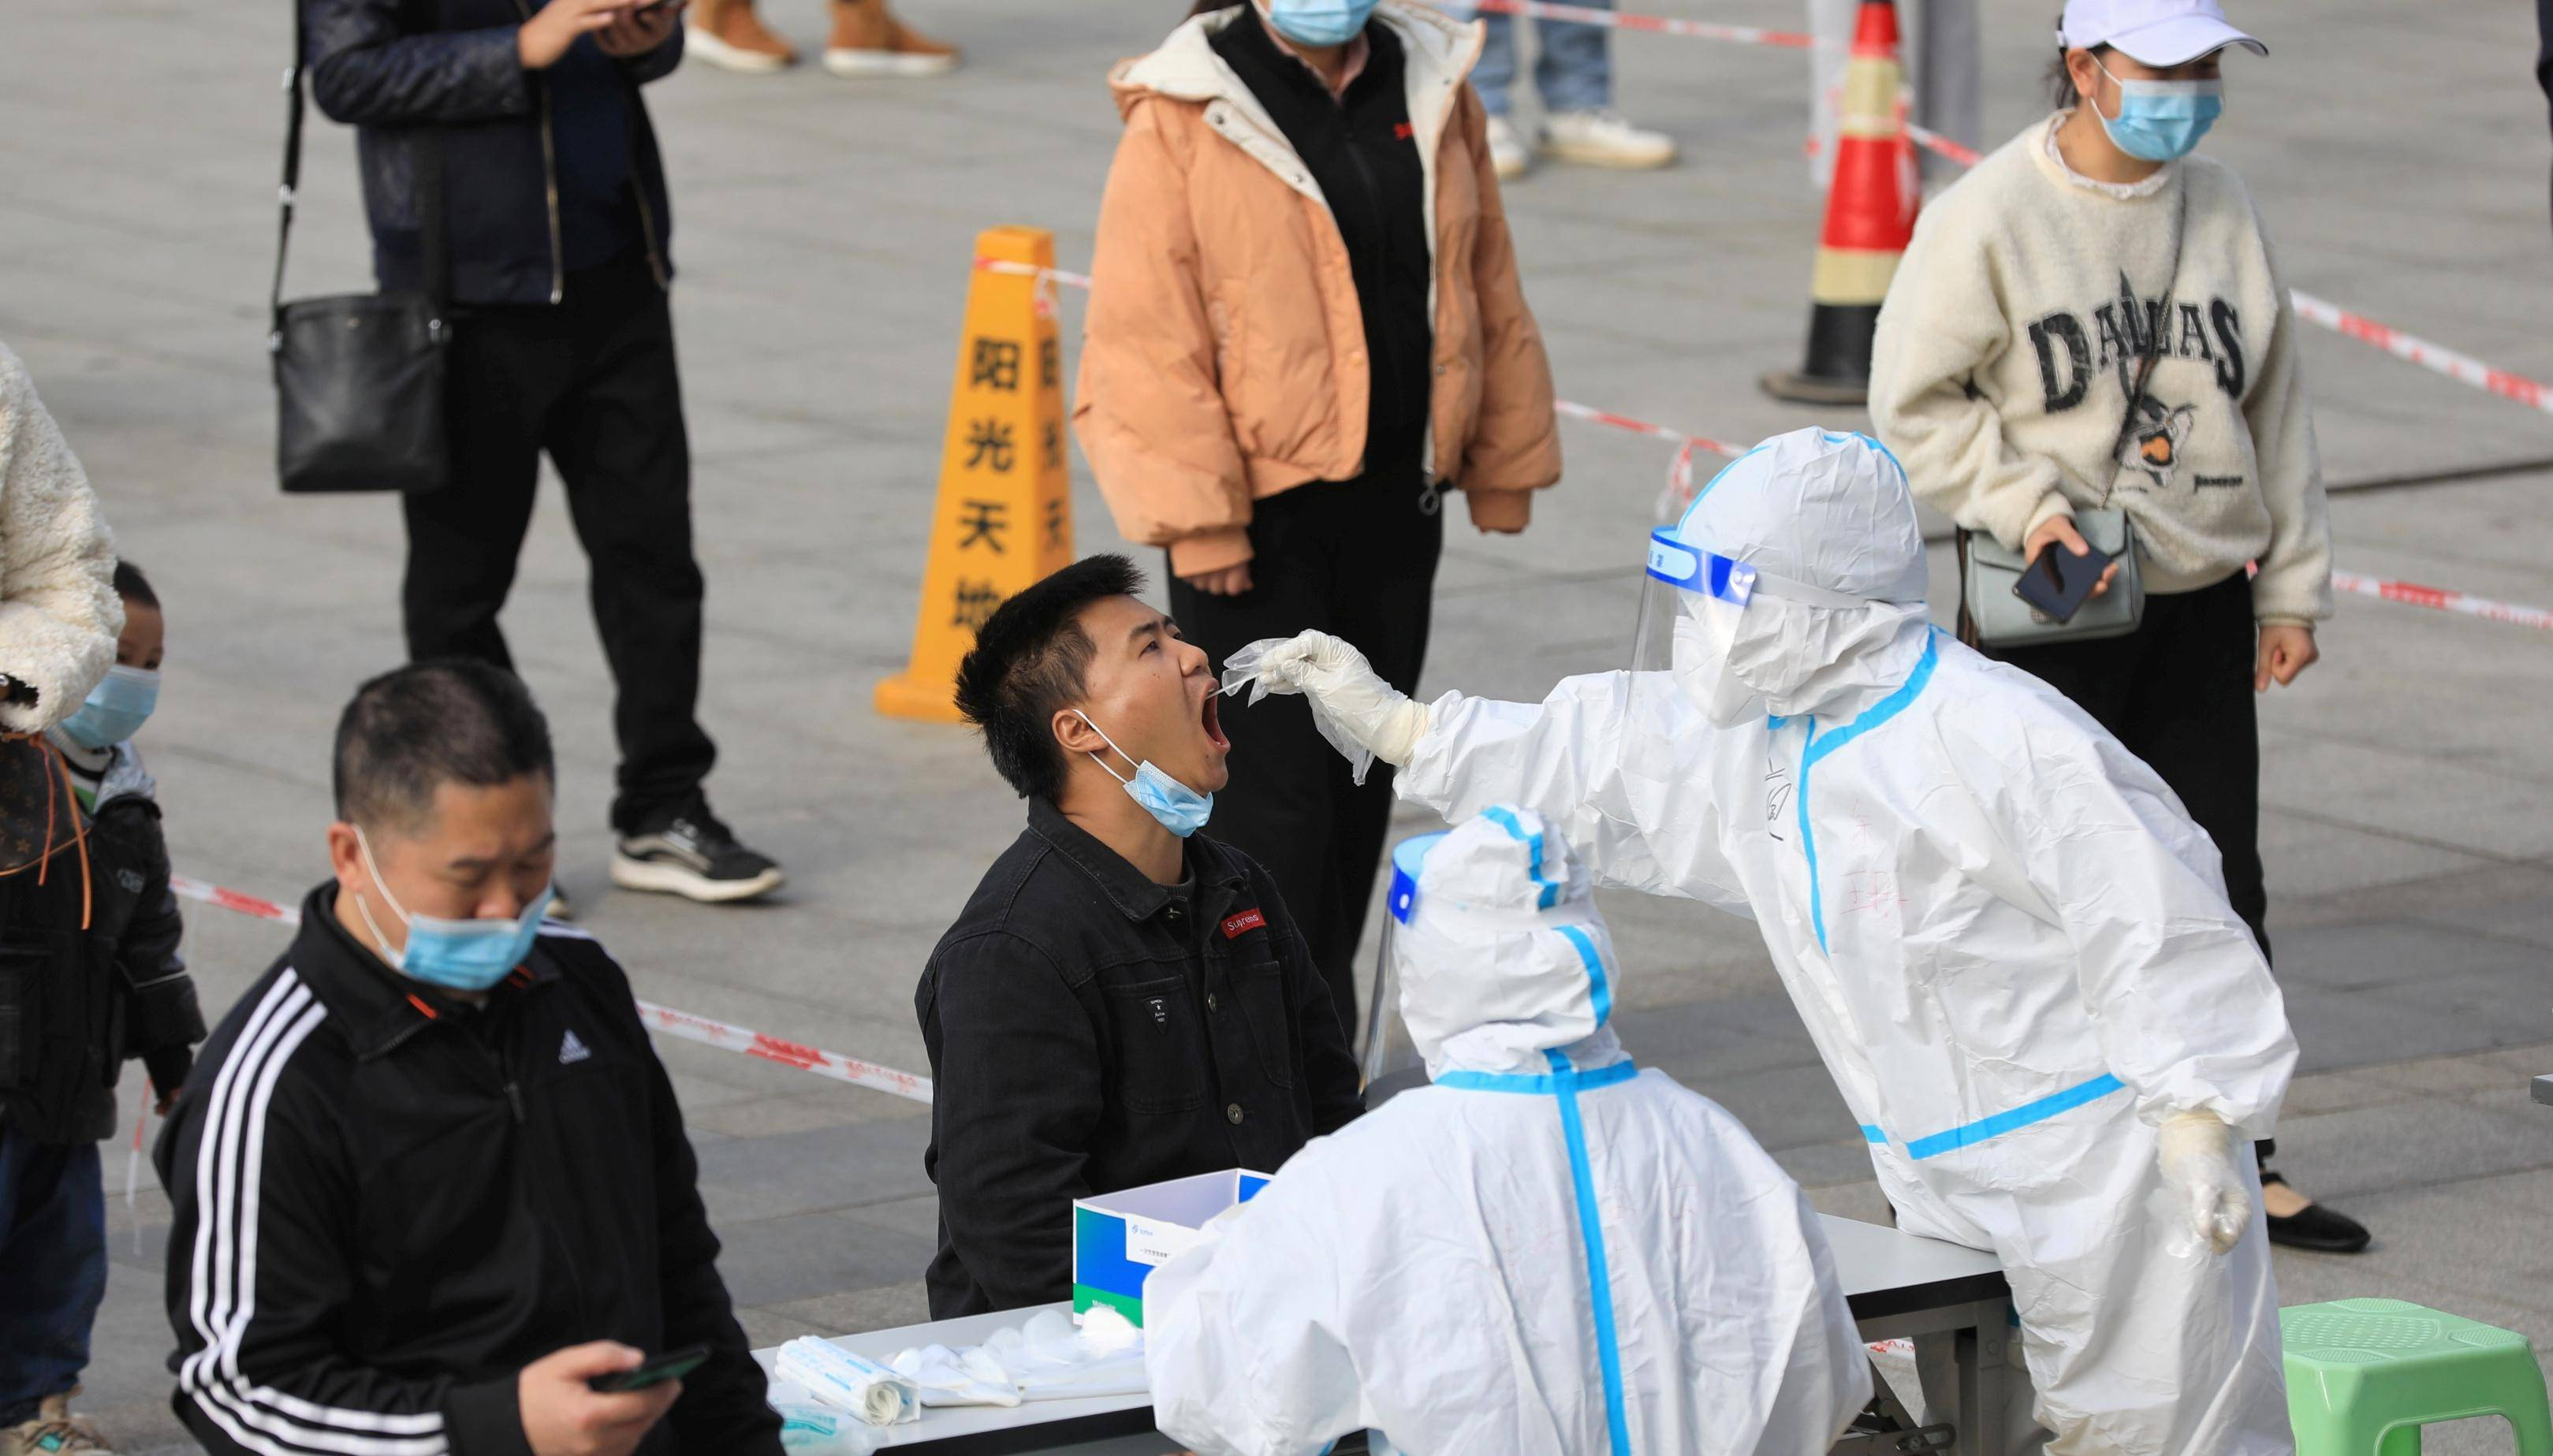 China urges faster Covid-19 testing amid latest outbreak